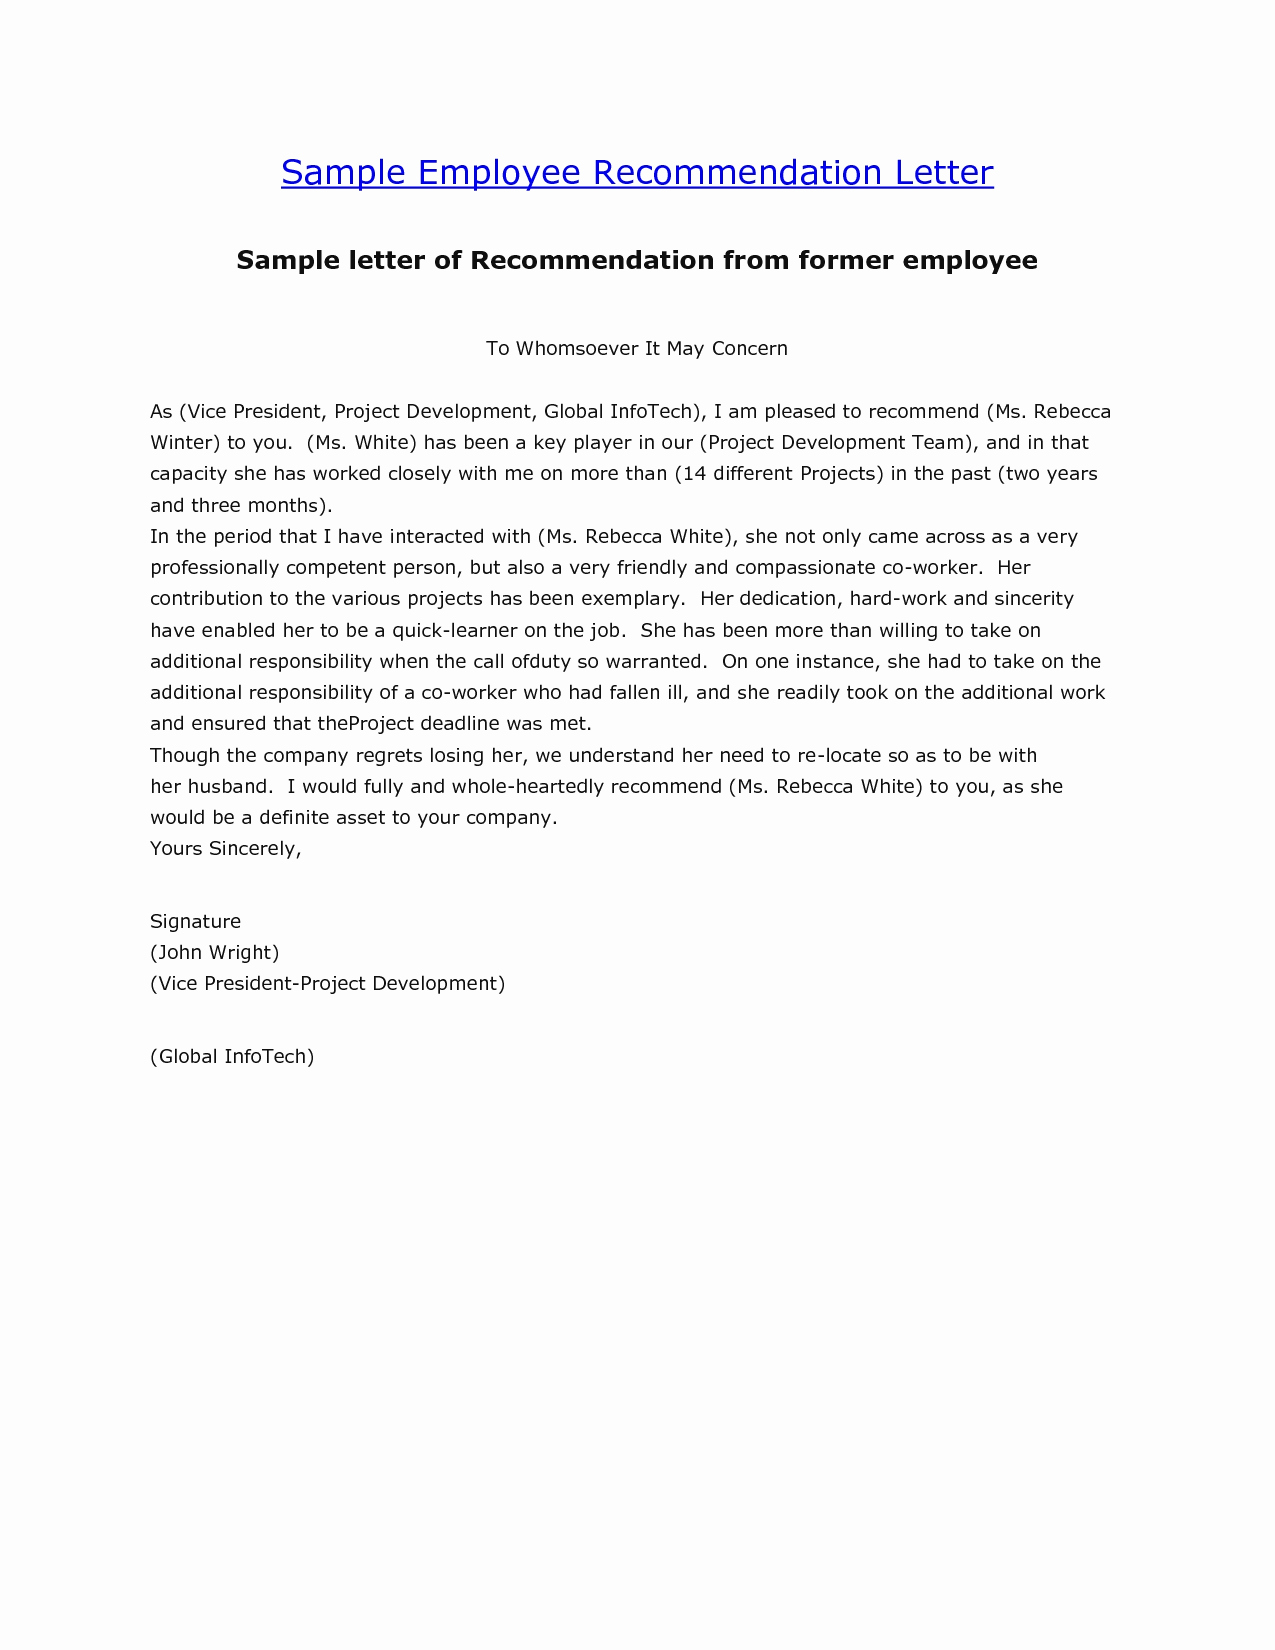 Letter Of Recommendation Outline Awesome [free] Letter Of Re Mendation Examples Samples